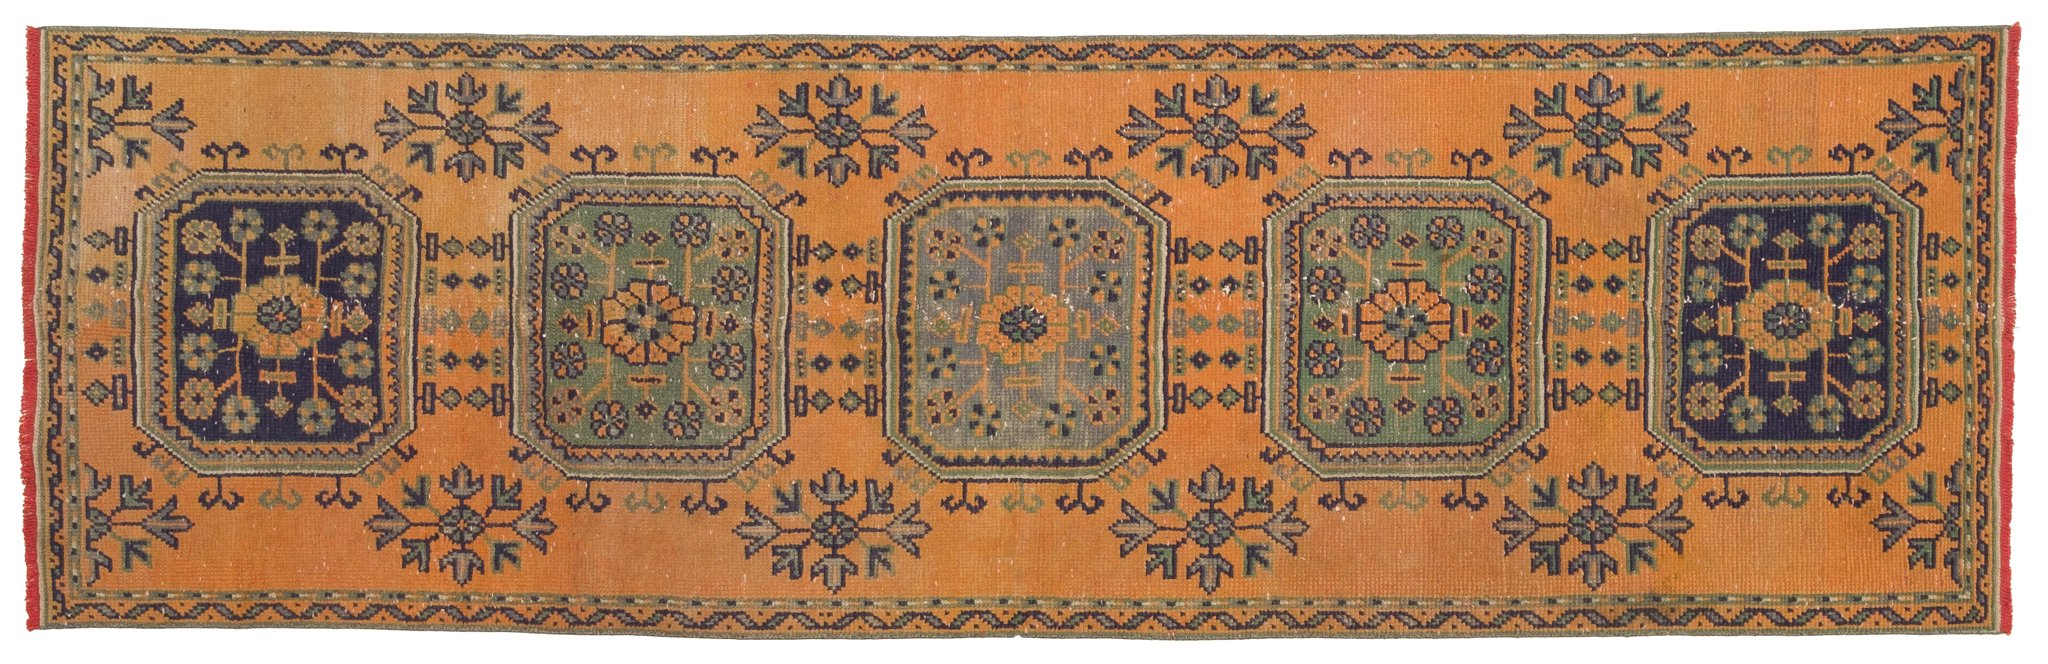 Vintage Turkish Runner Rug Ryhor